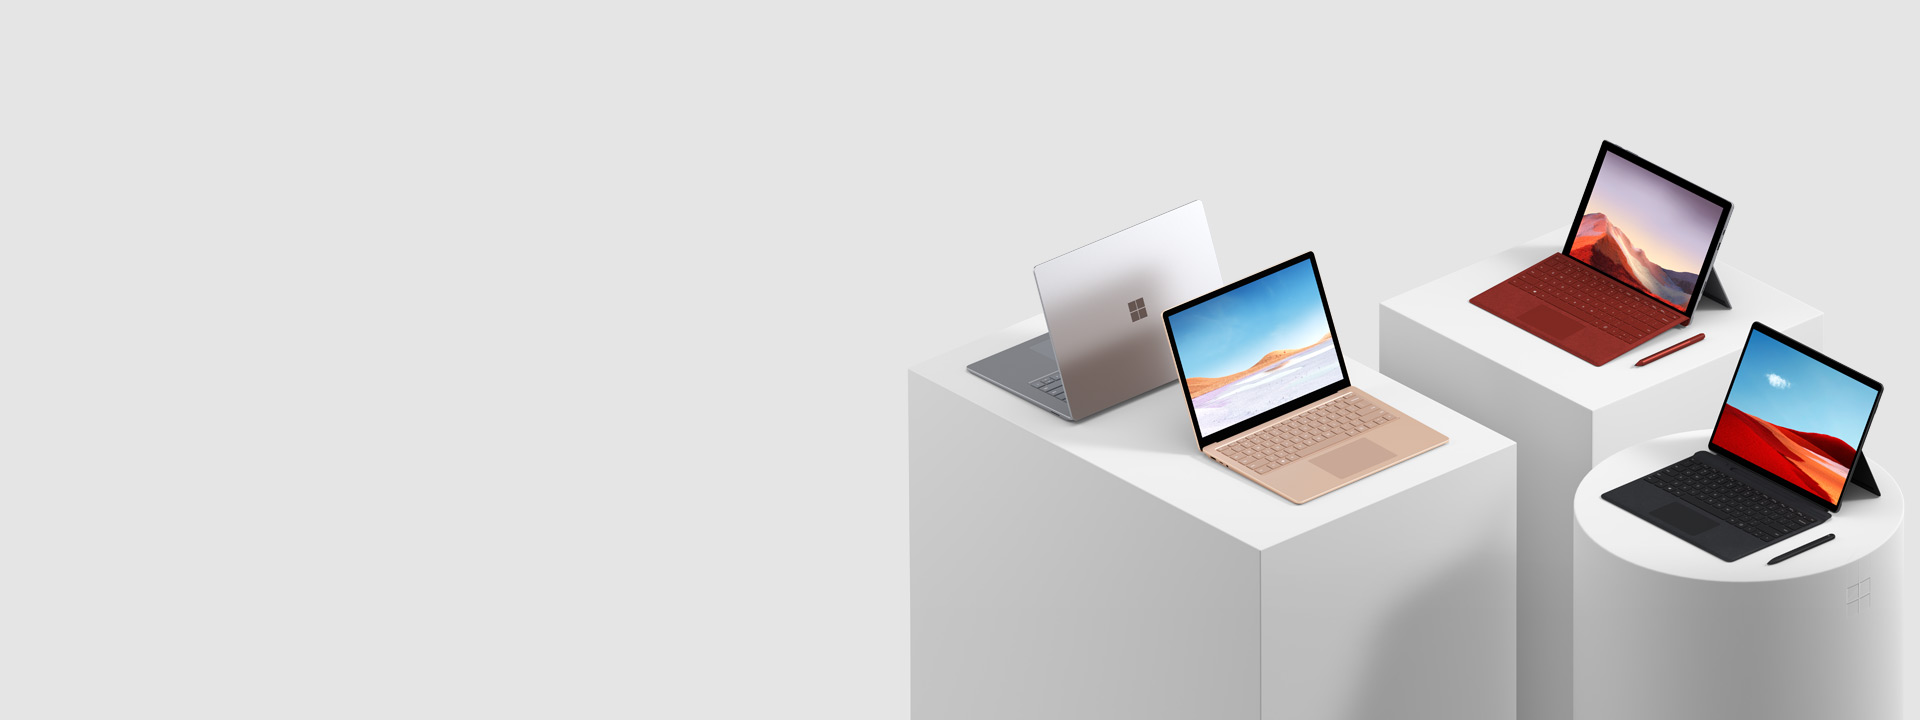 Several computers from Surface including Surface Pro 7, Surface Pro X, Surface Book 2, Surface Studio 2 and Surface Go